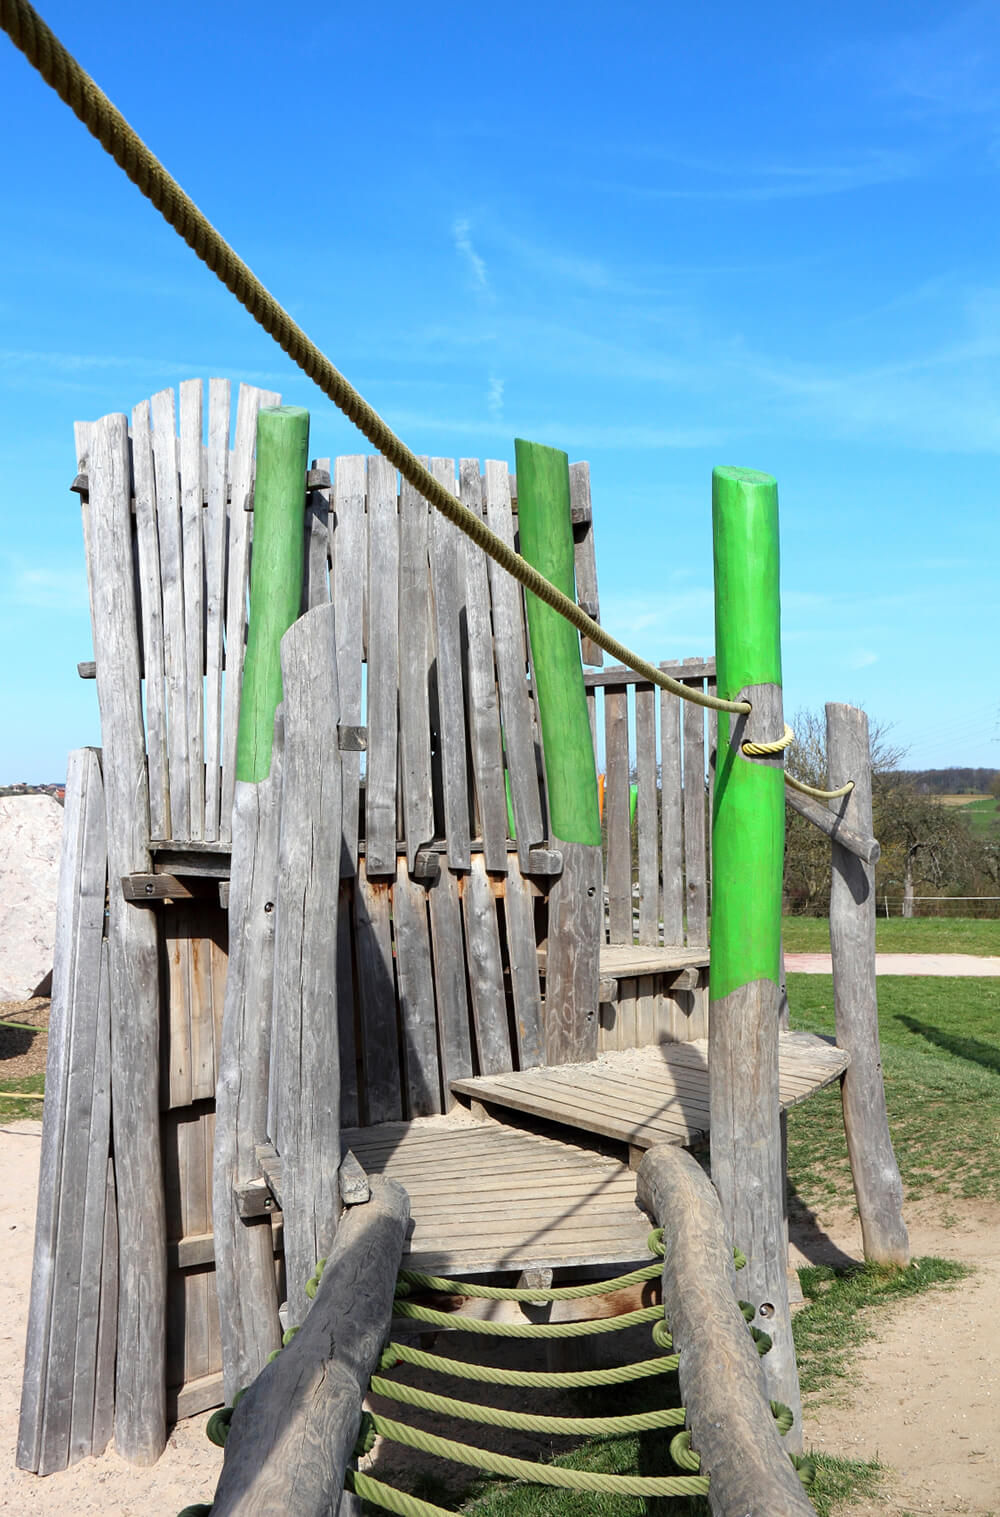 Rope bridges and balancing beams are another fun activity to add to a playset, as long as they aren't too far off the ground!